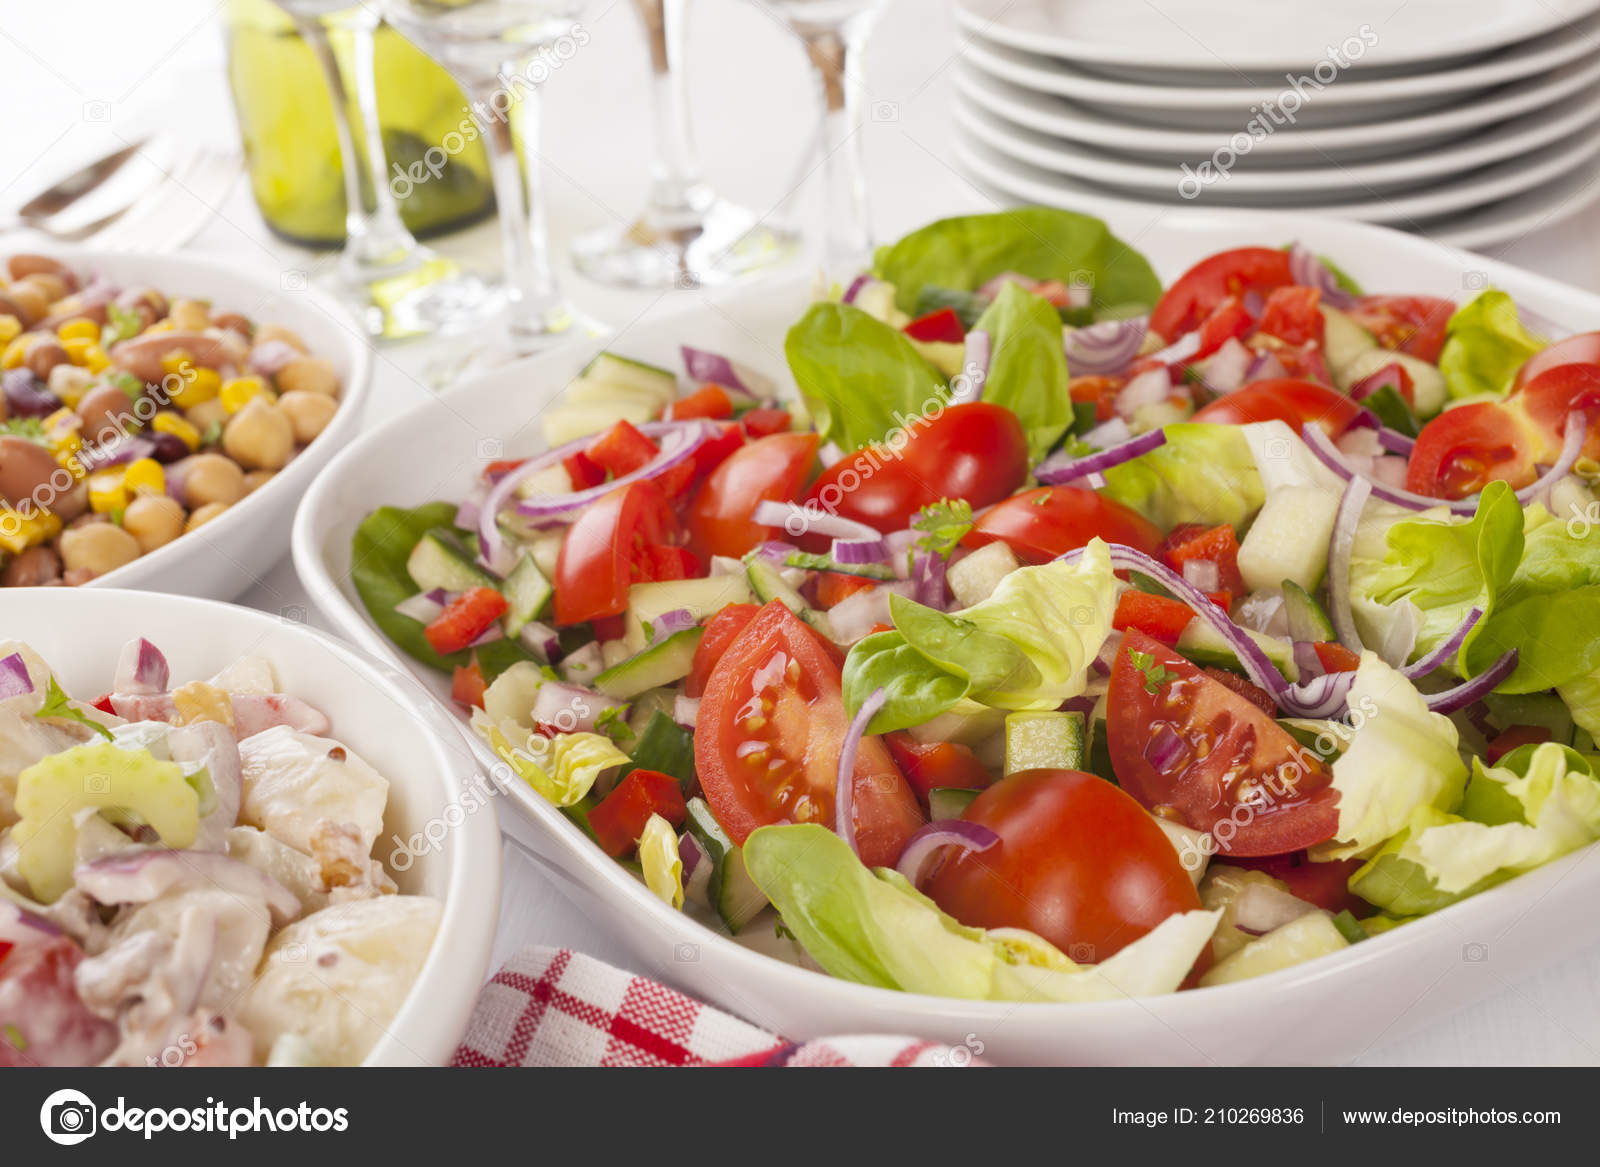 Buffet Di Insalate Miste : Selezione di insalate a buffet u foto stock travellinglight